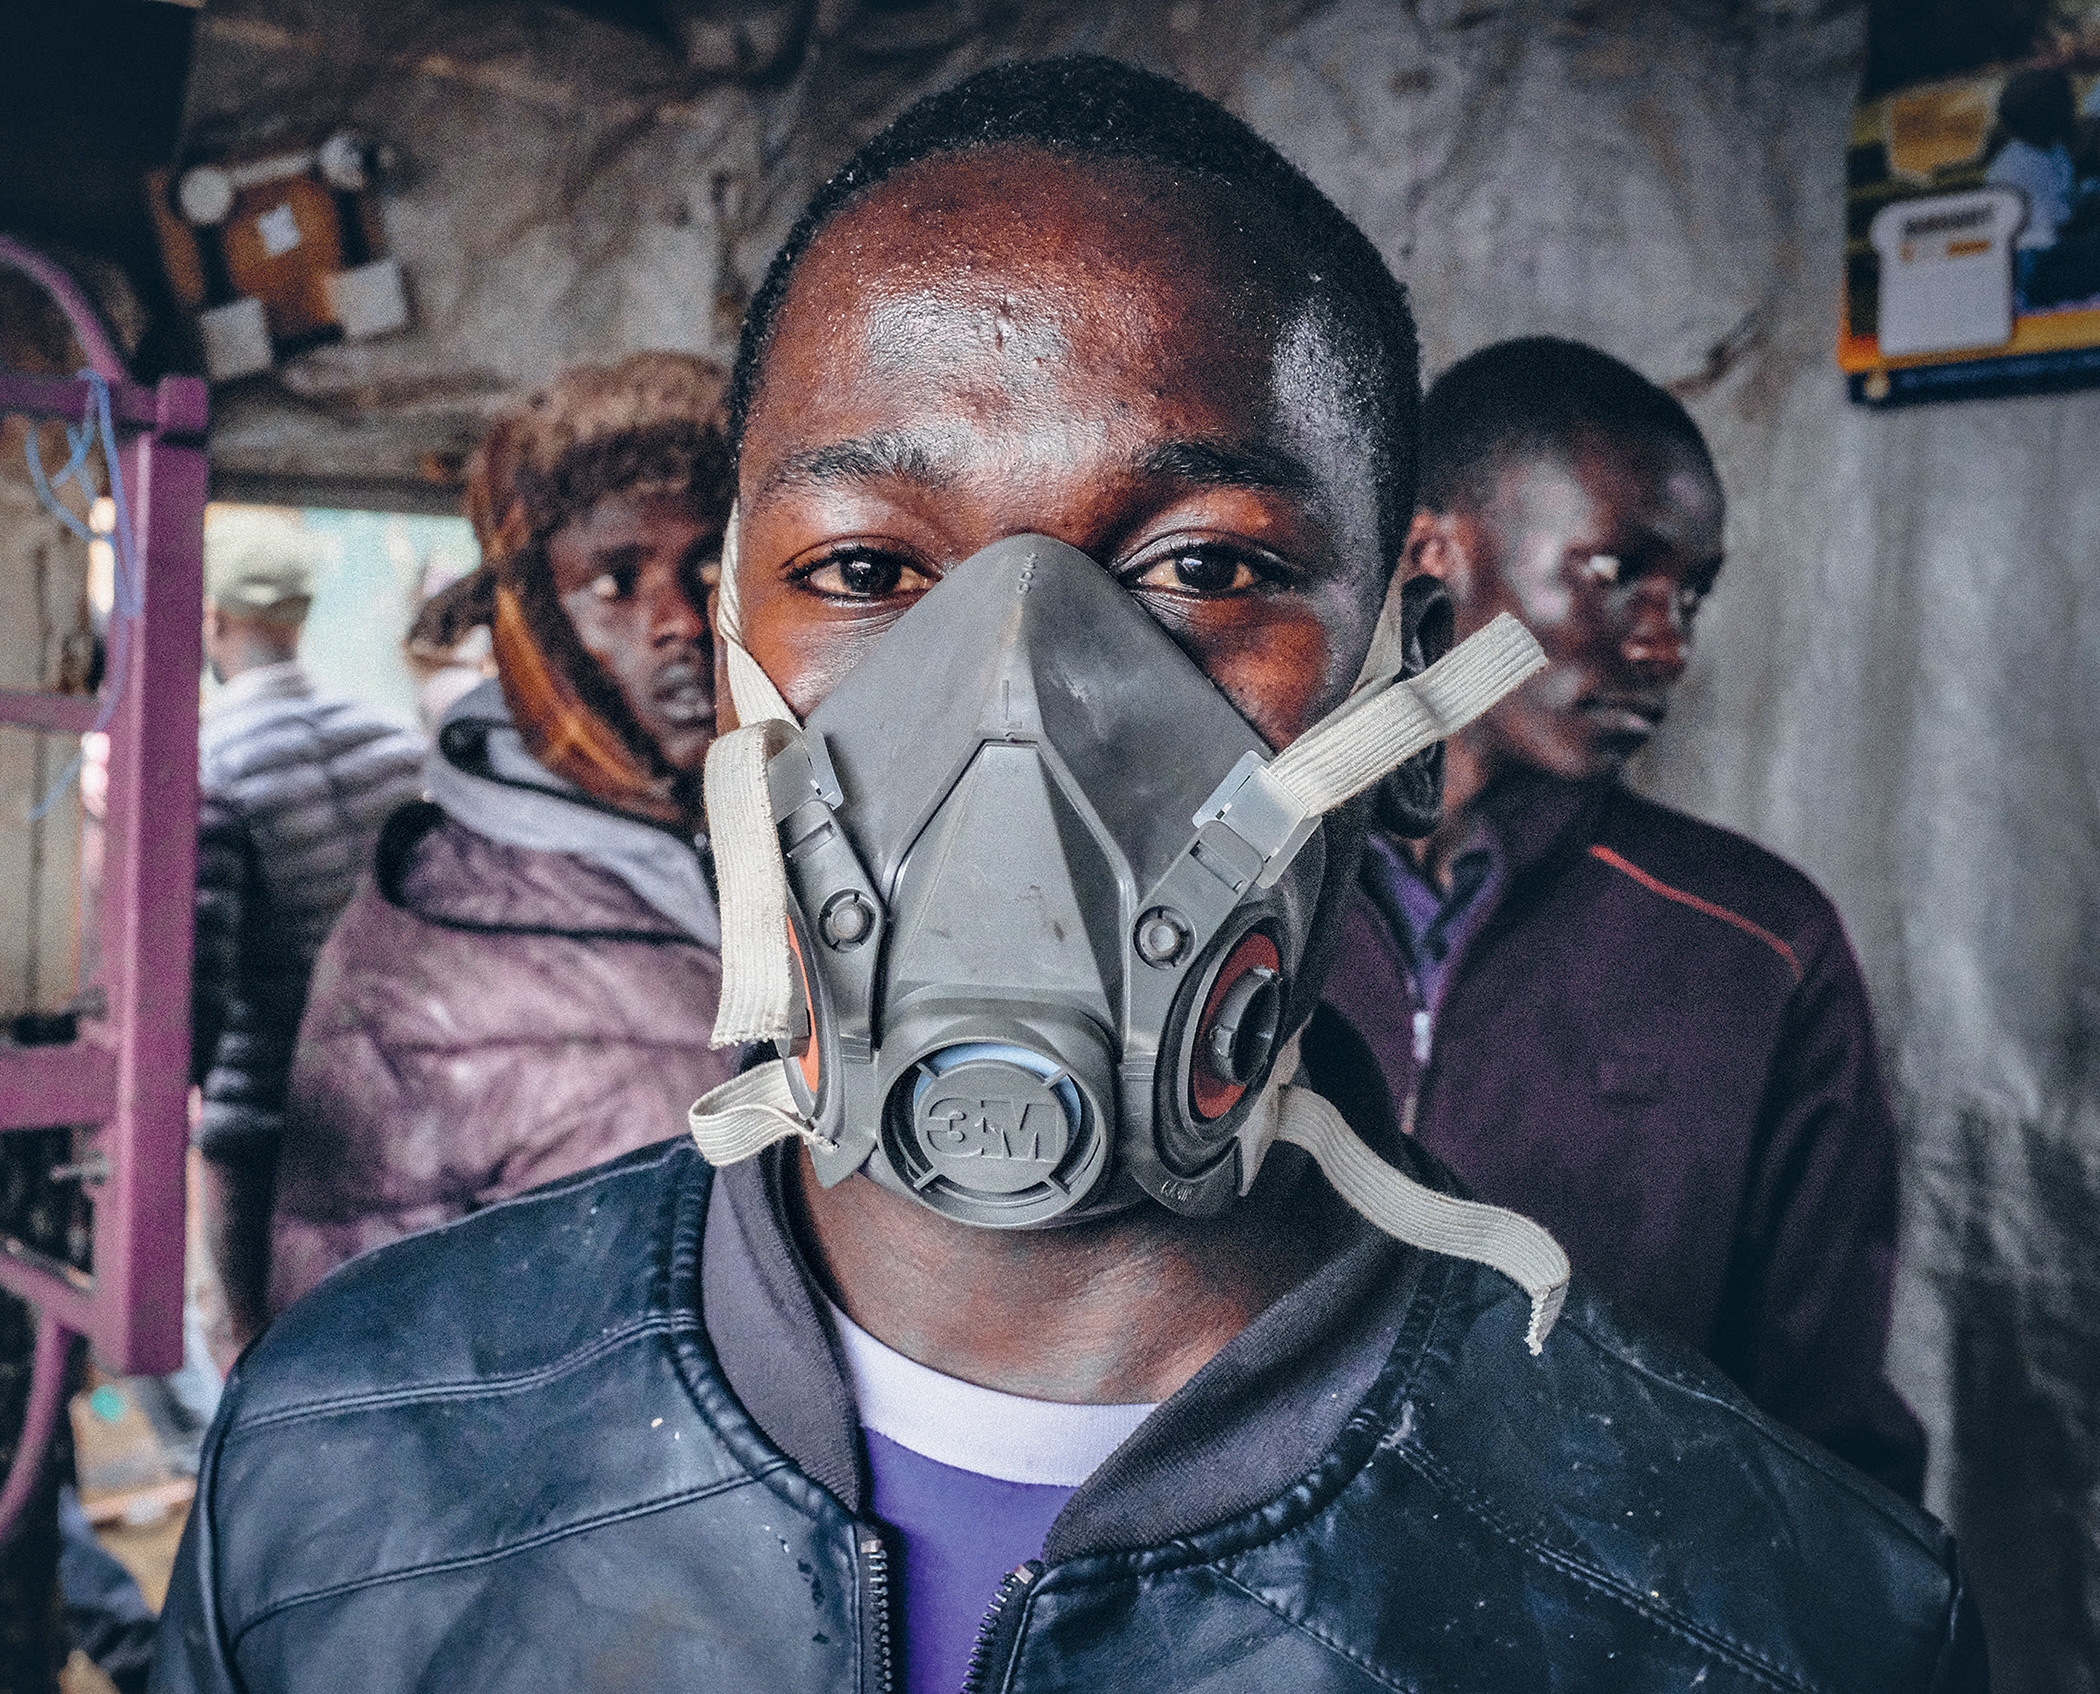 A young boy wears a gas mask to protect himself from the fumes during a fire in Kibera, the largest slum in Nairobi, Kenya.